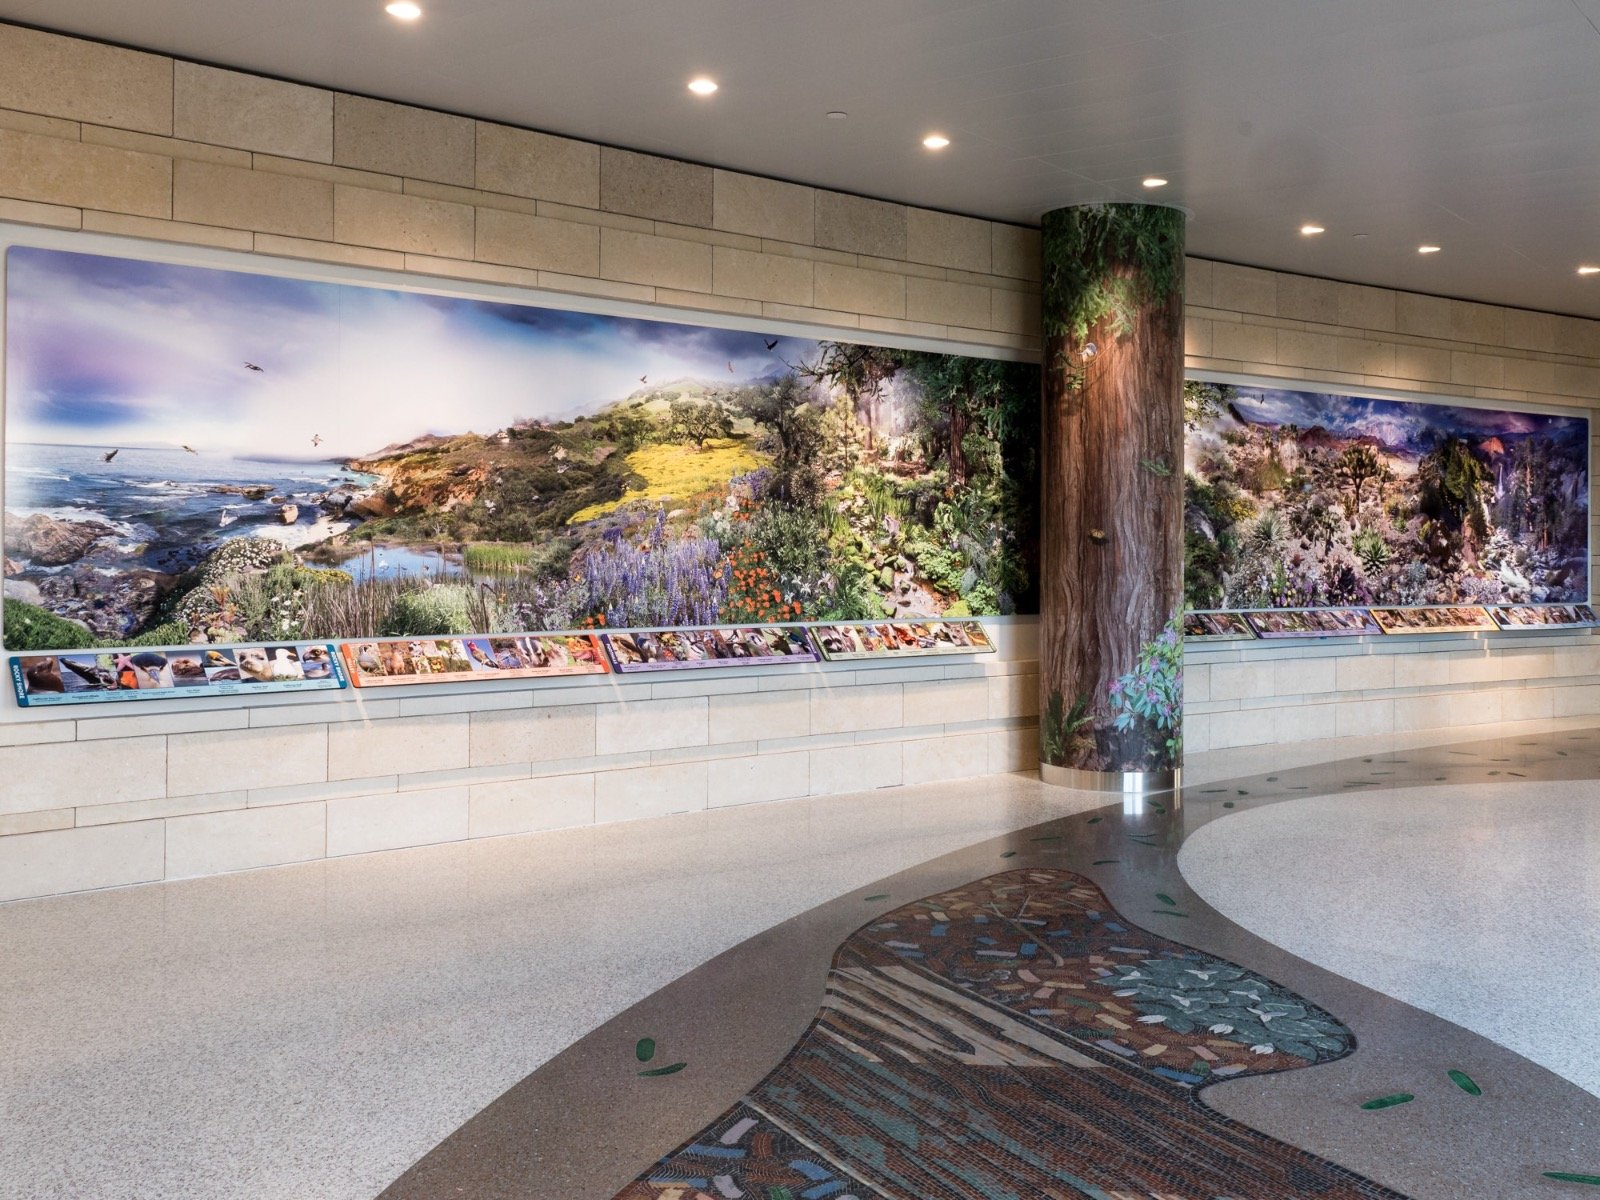 Lucile Packard Children's Hospital | custom made tile mosaic design provided by Mosaics Lab on mosaicslab.com